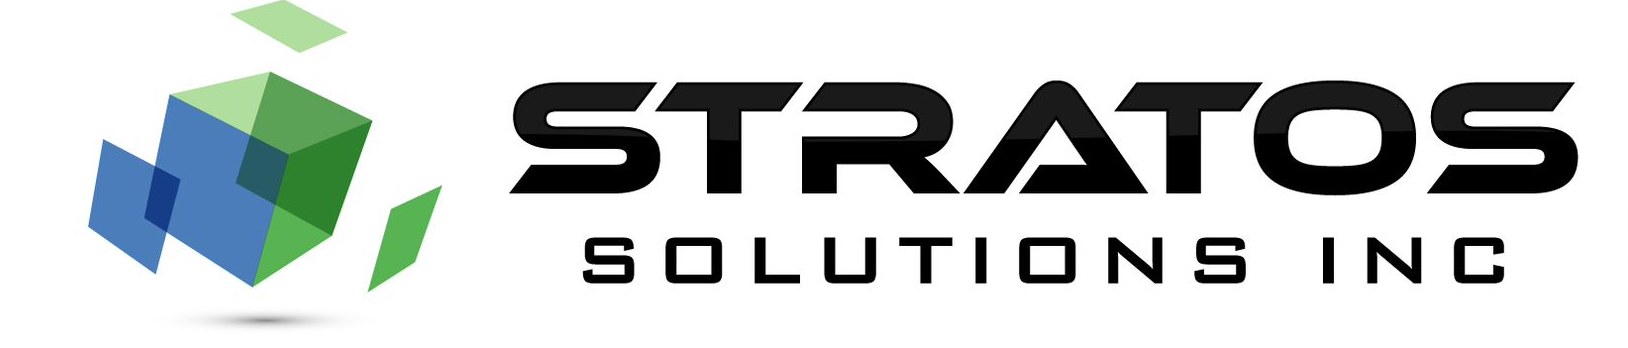 Stratos Solutions